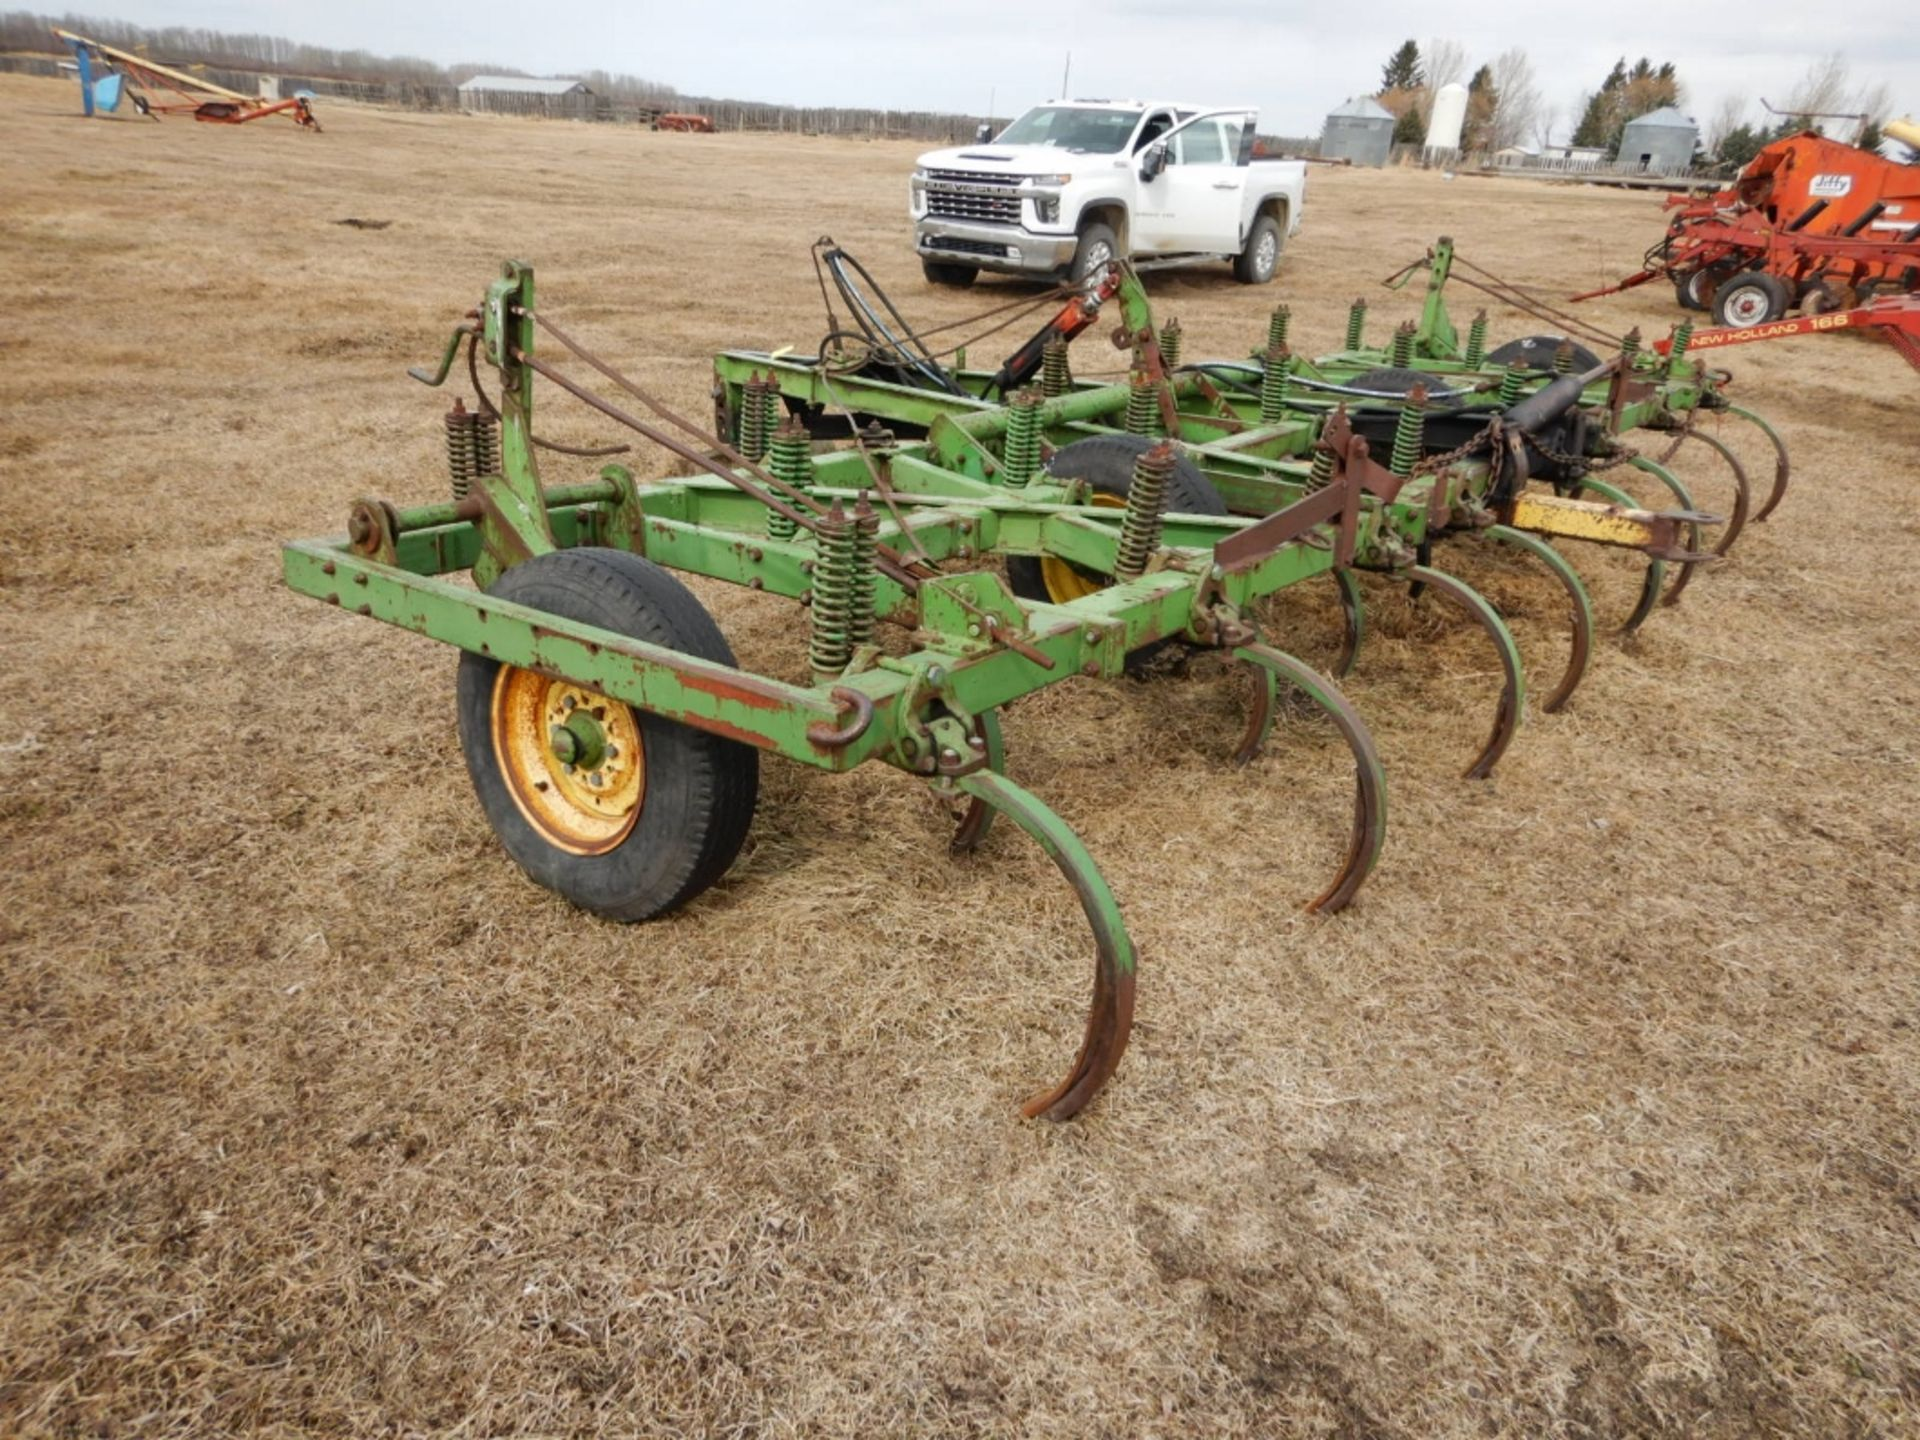 JD 18 FT DEEP TILLAGE CULTIVATOR W/SPIKES - Image 3 of 4